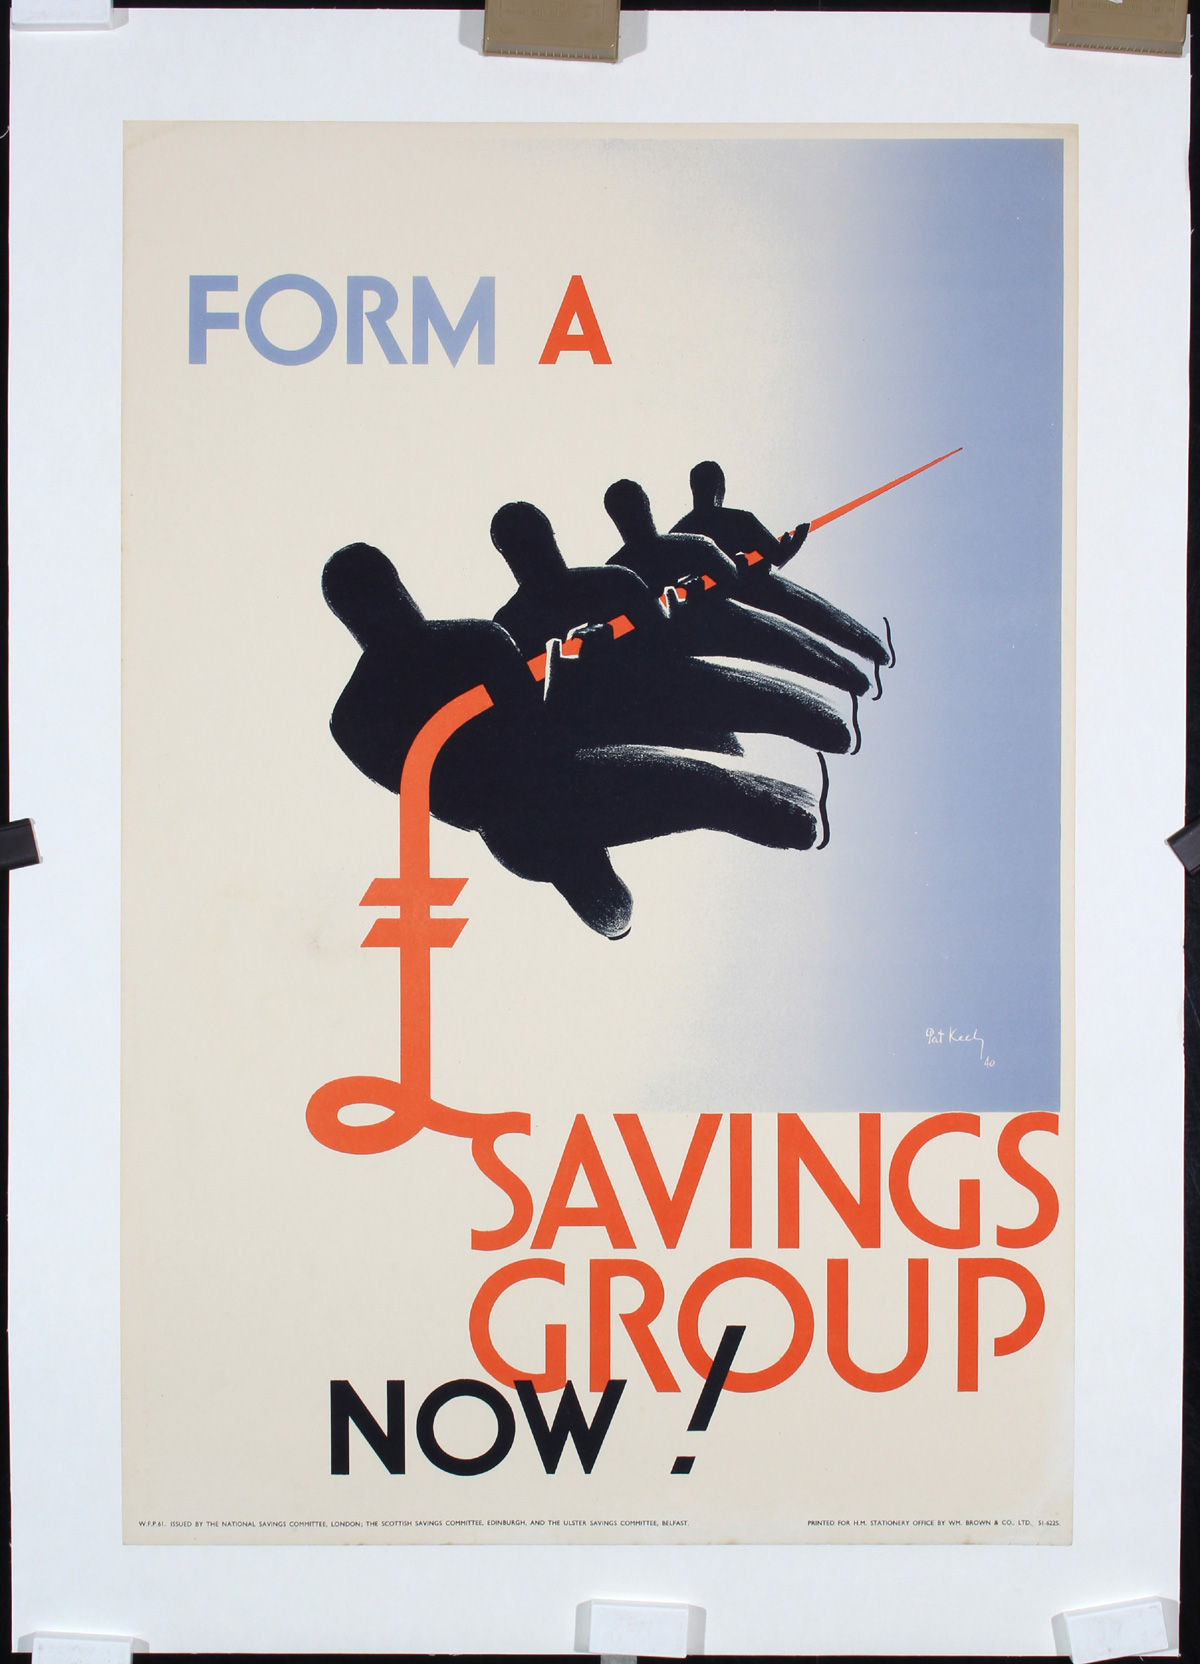 Form A Savings Group Now